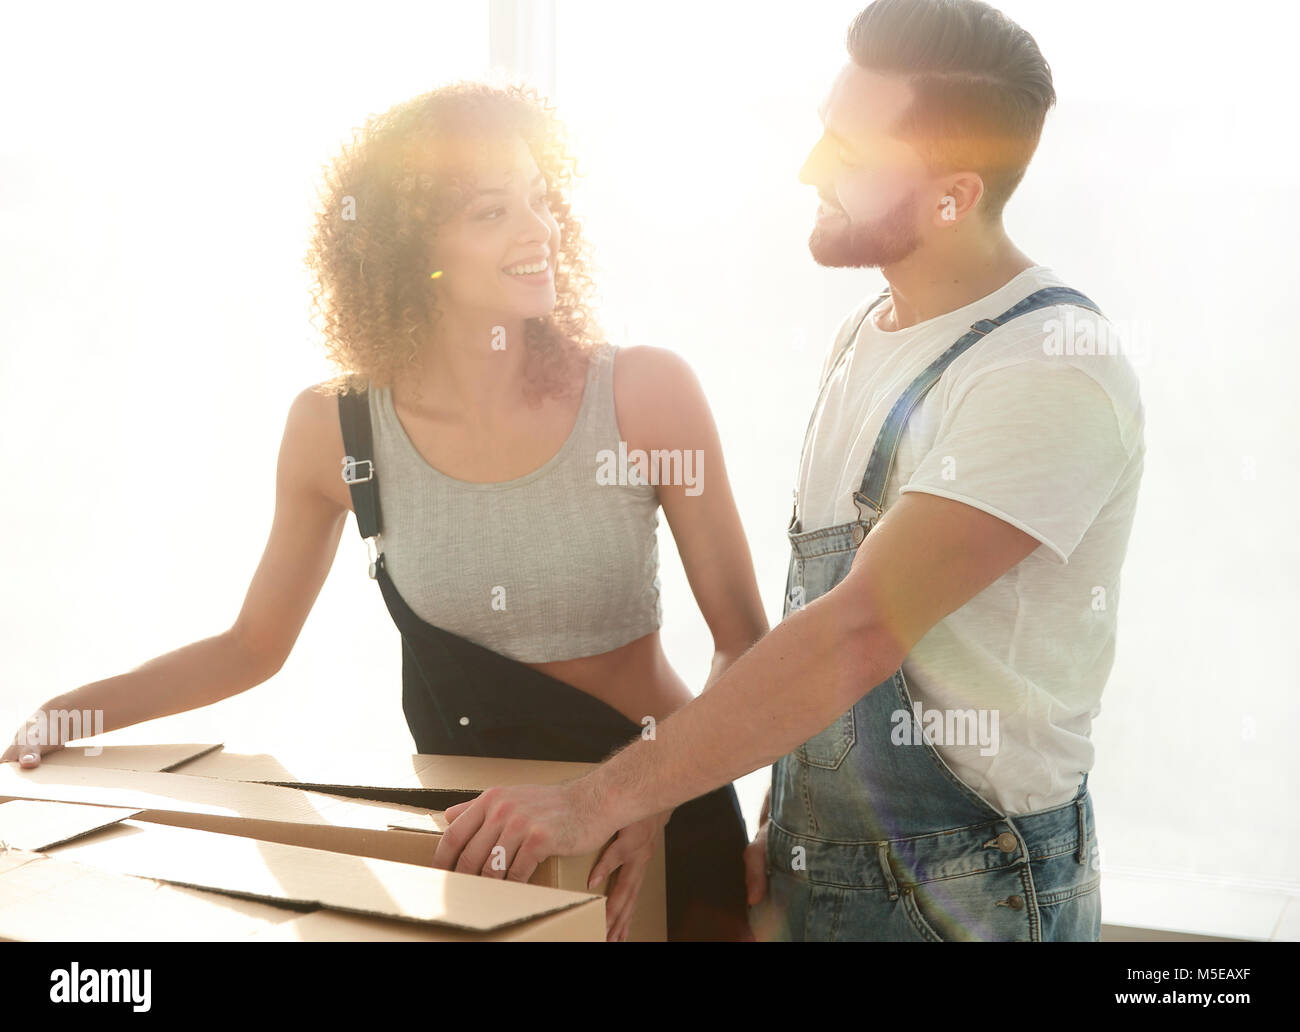 Newlyweds unpack boxes in a new apartment. - Stock Image